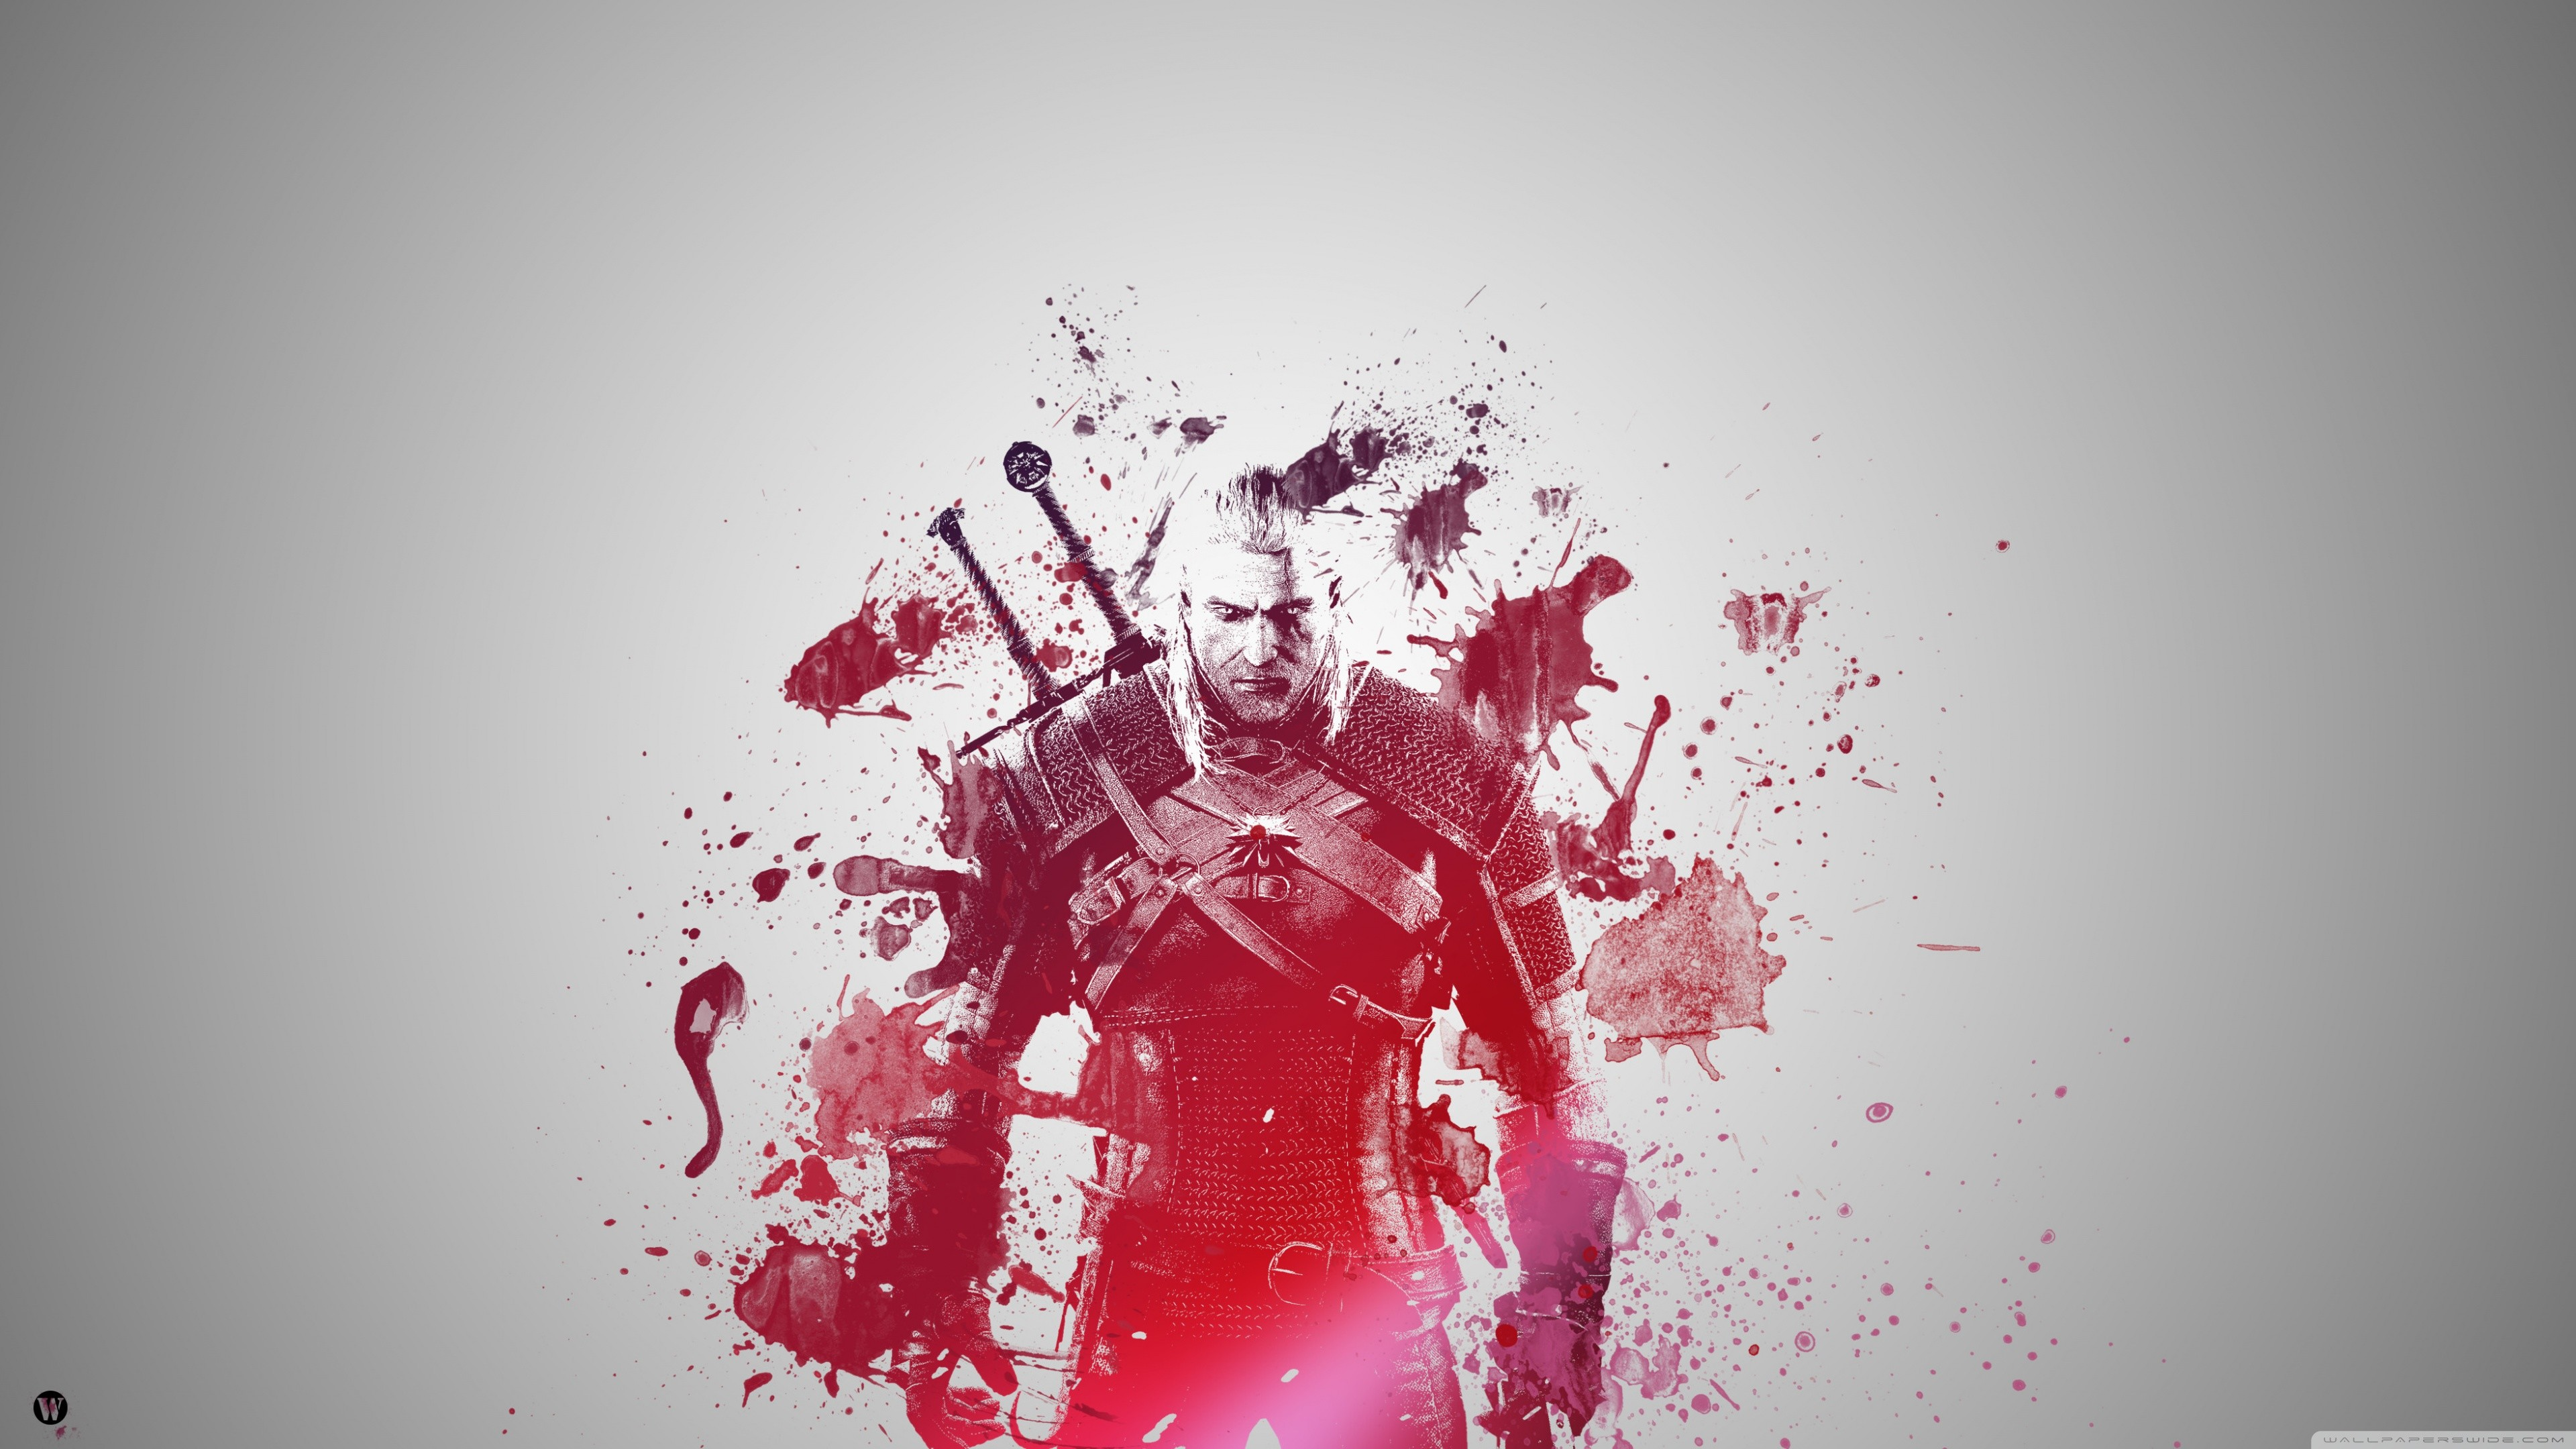 3840x2160 The Witcher 3 Wild Hunt Geralt of Rivia HD Wide Wallpaper for Widescreen